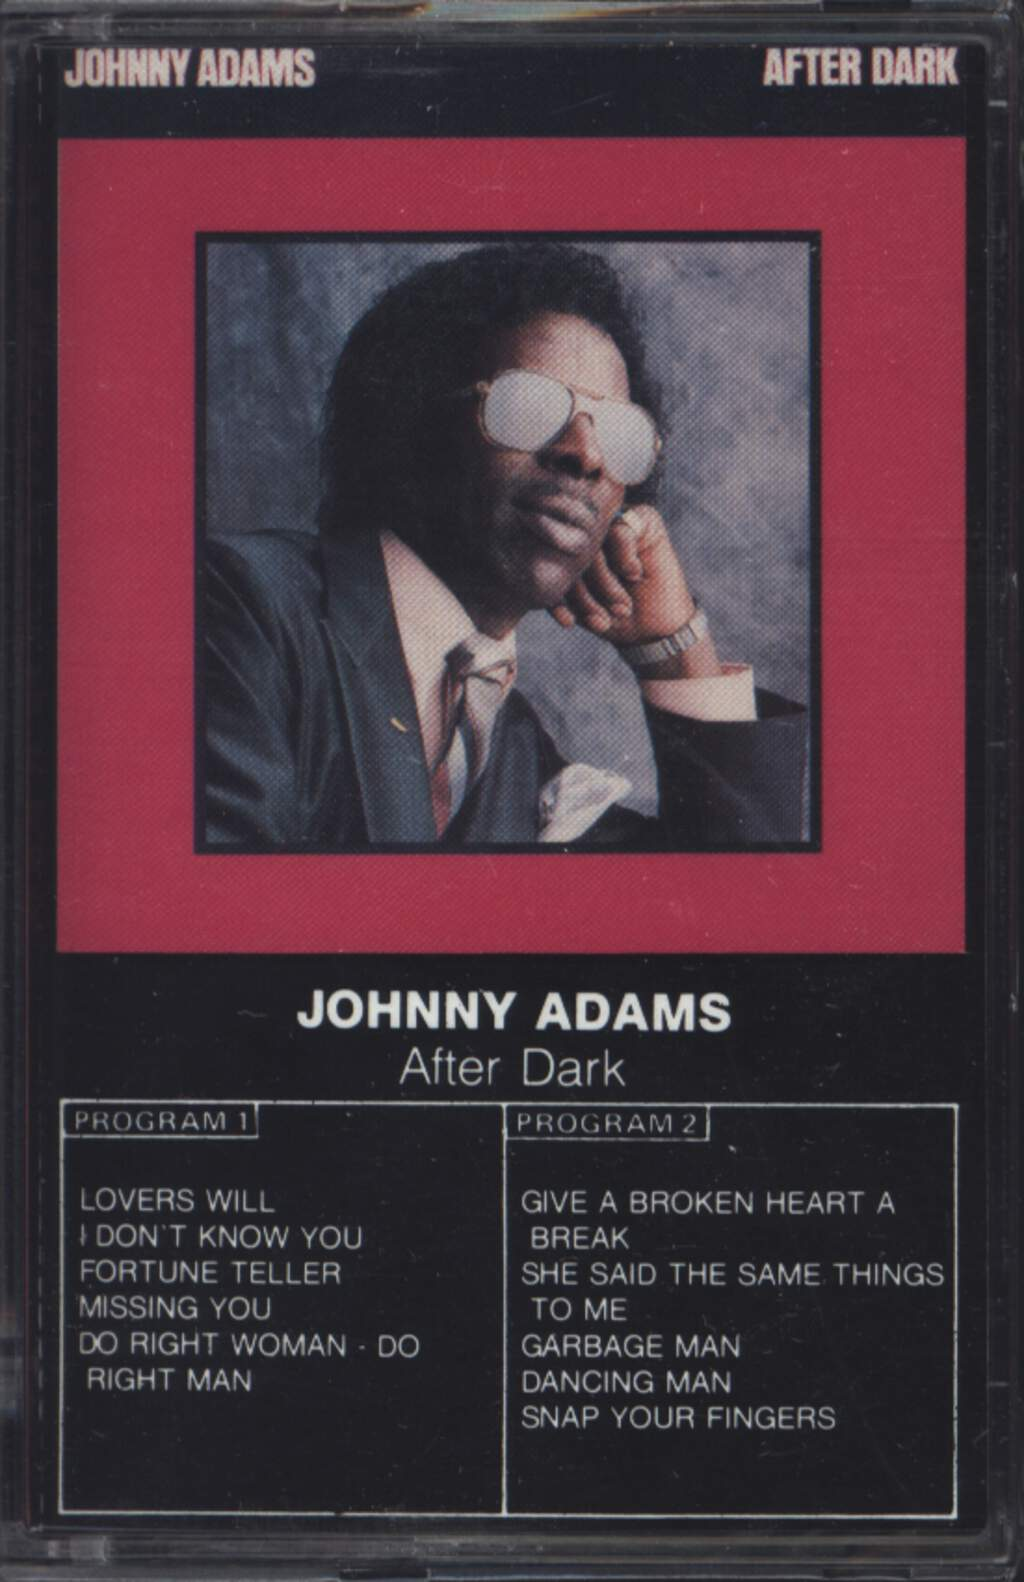 Johnny Adams: After Dark, Compact Cassette